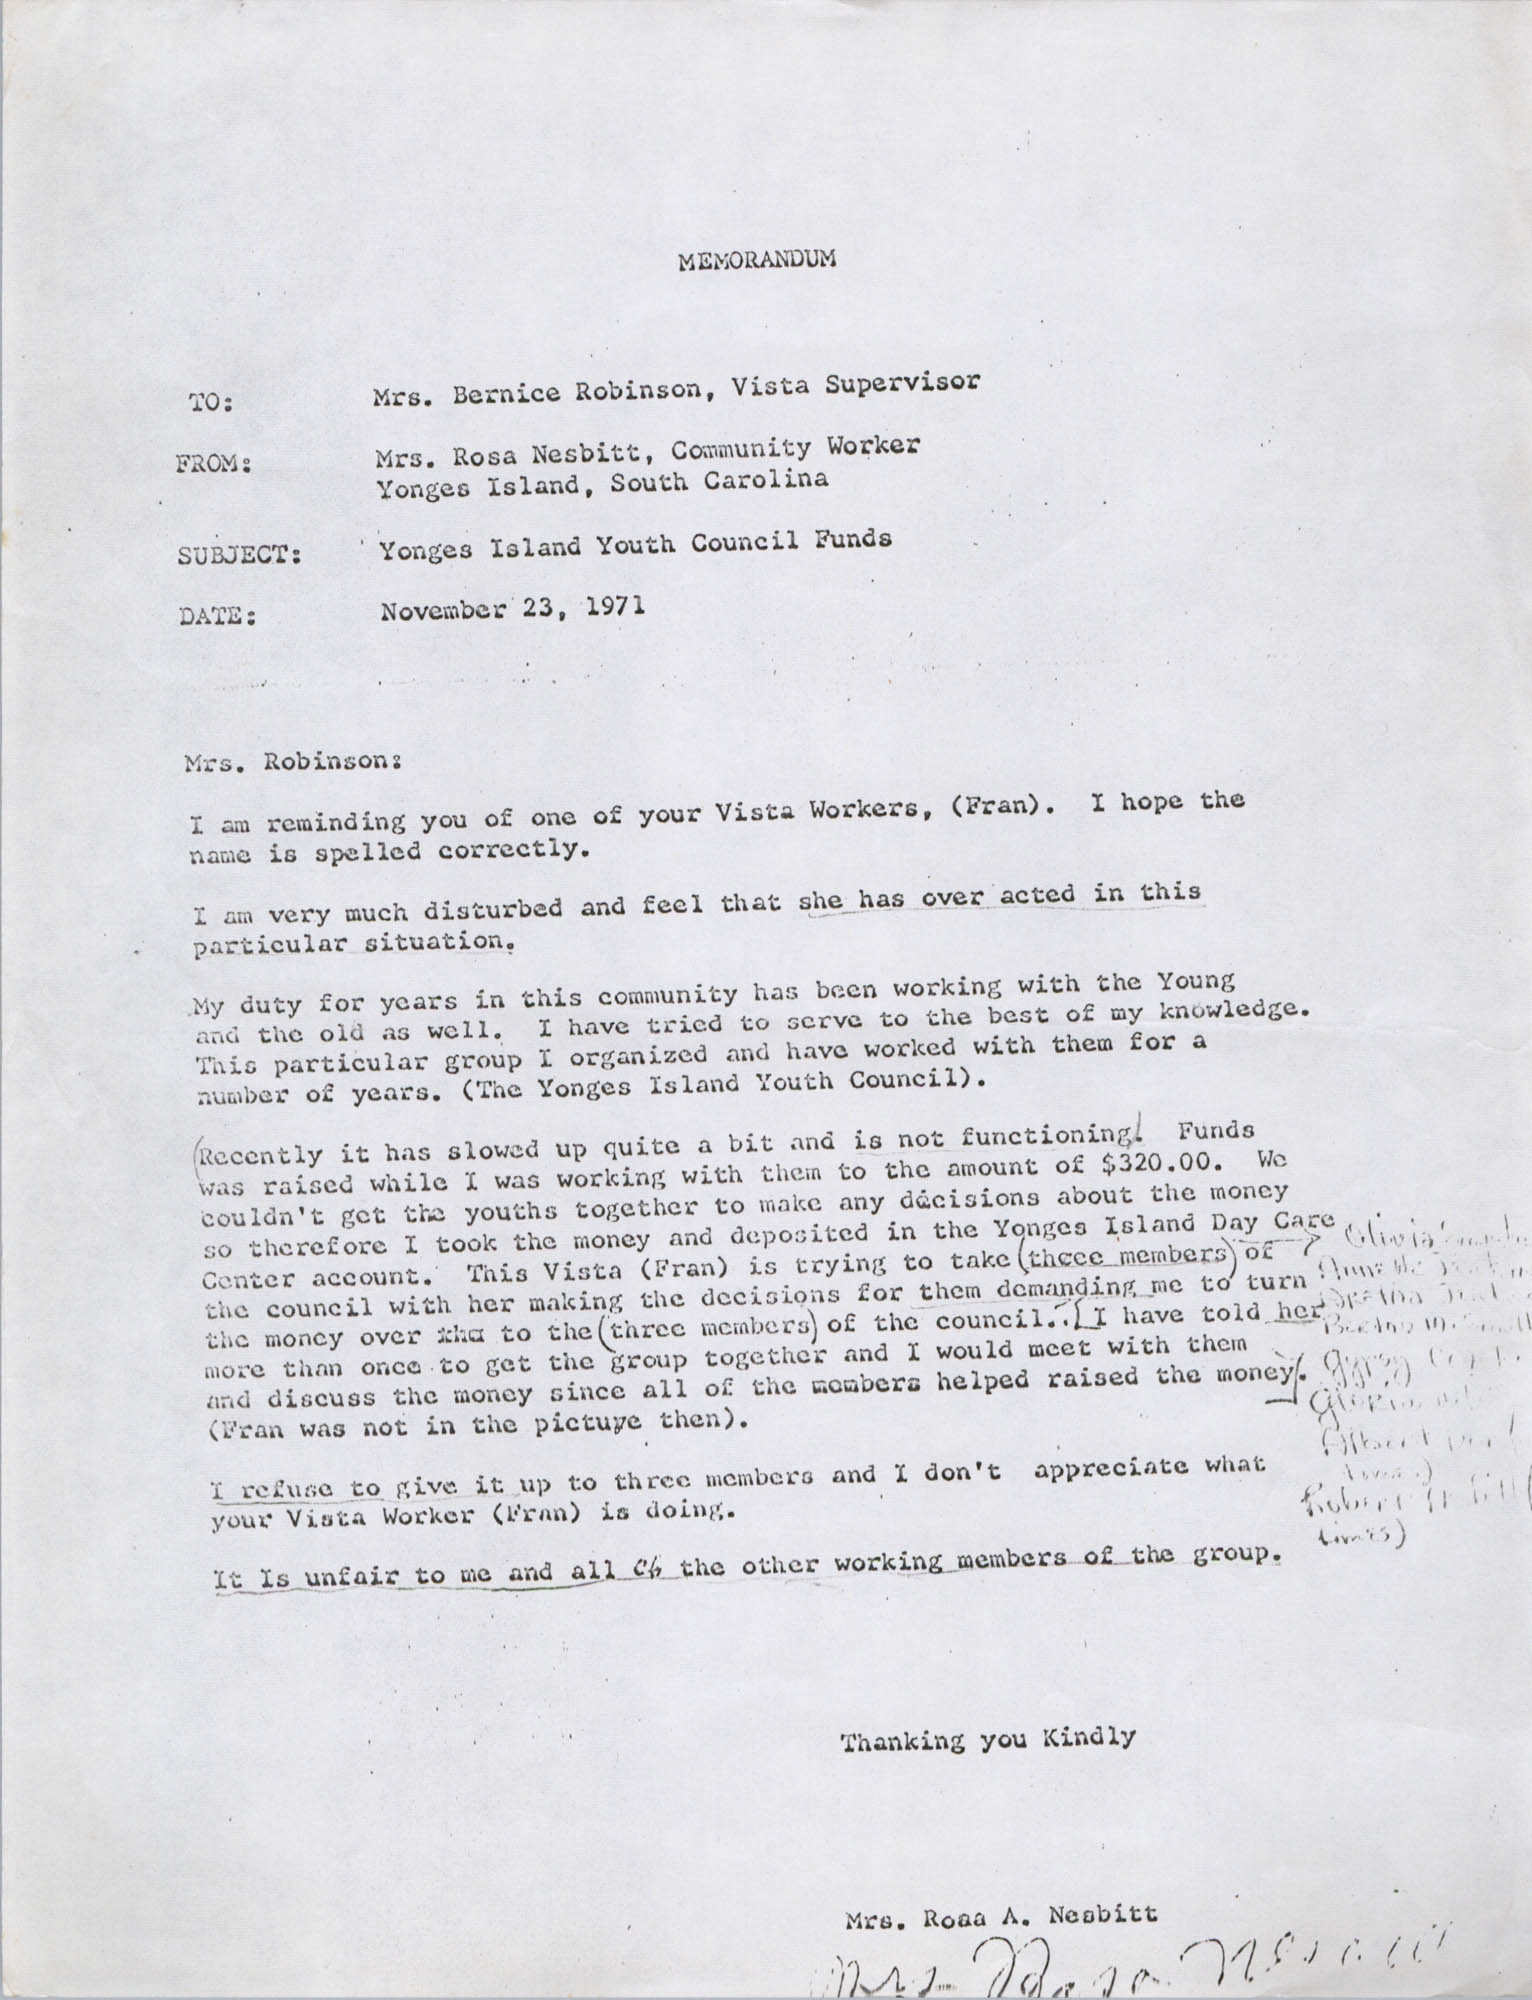 Letter from Rosa A. Nesbitt to Bernice Robinson, November 23, 1971